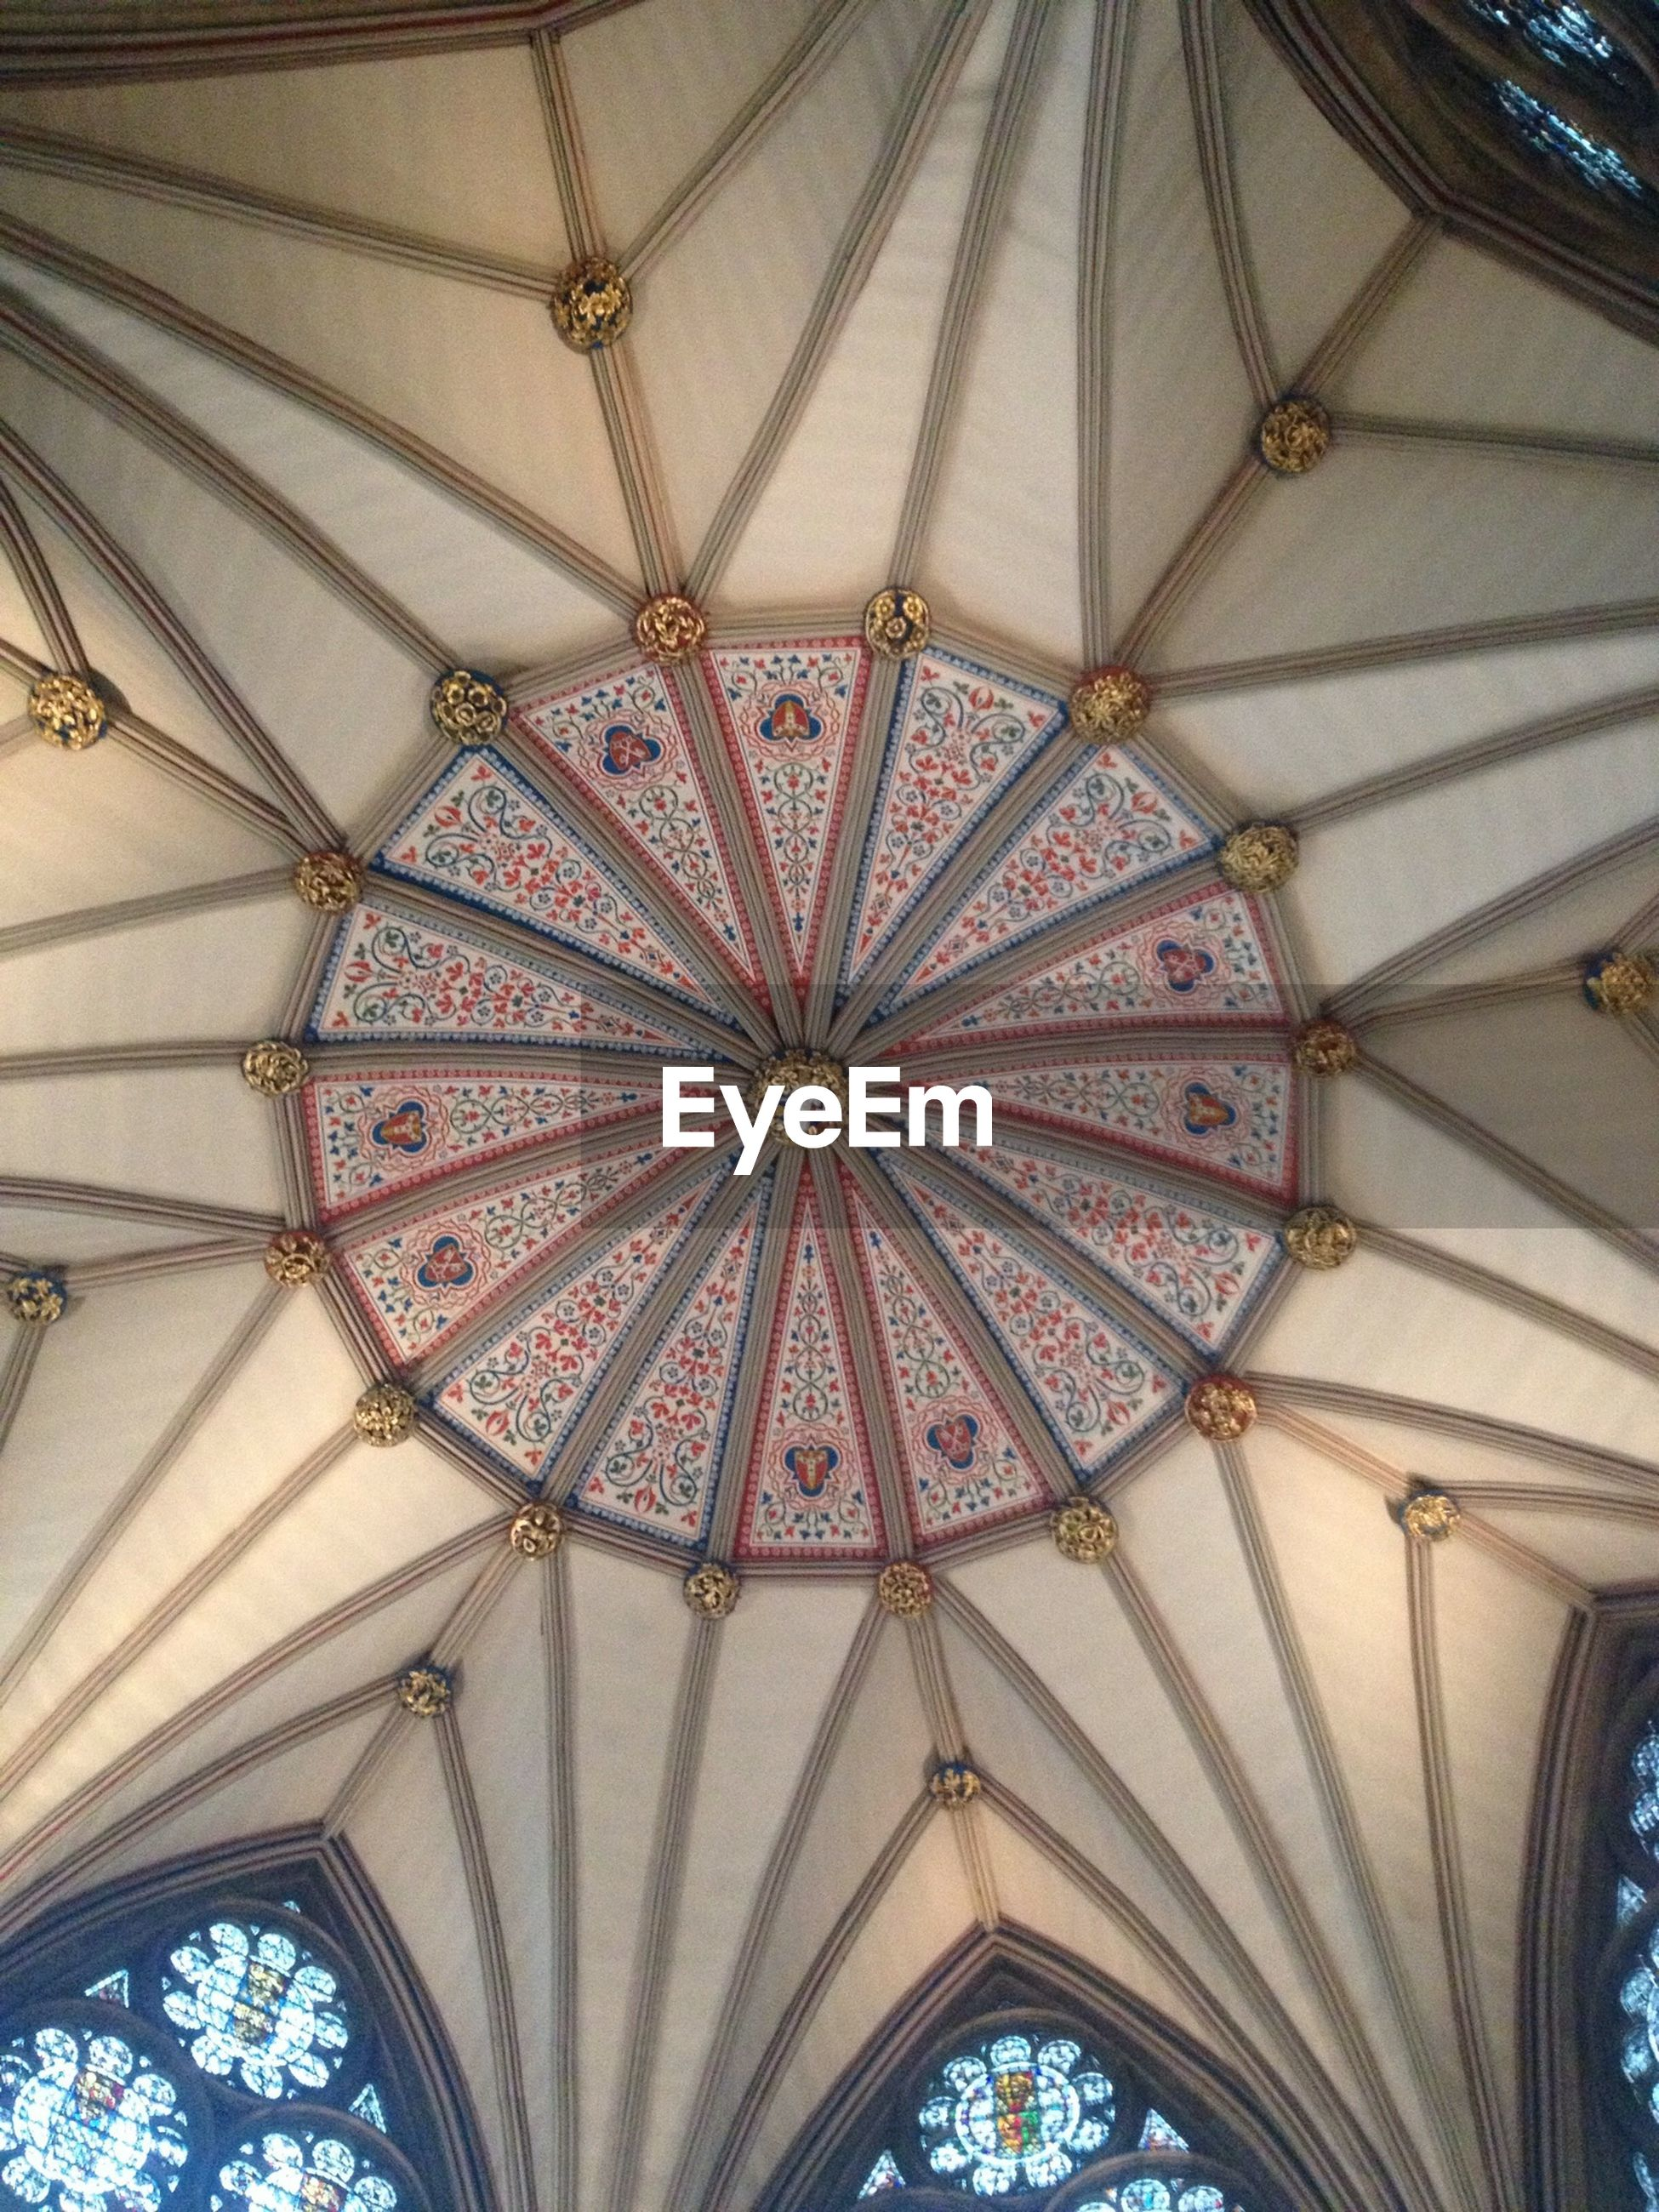 indoors, ceiling, low angle view, architecture, built structure, design, pattern, ornate, directly below, architectural feature, arch, place of worship, interior, religion, full frame, church, circle, stained glass, no people